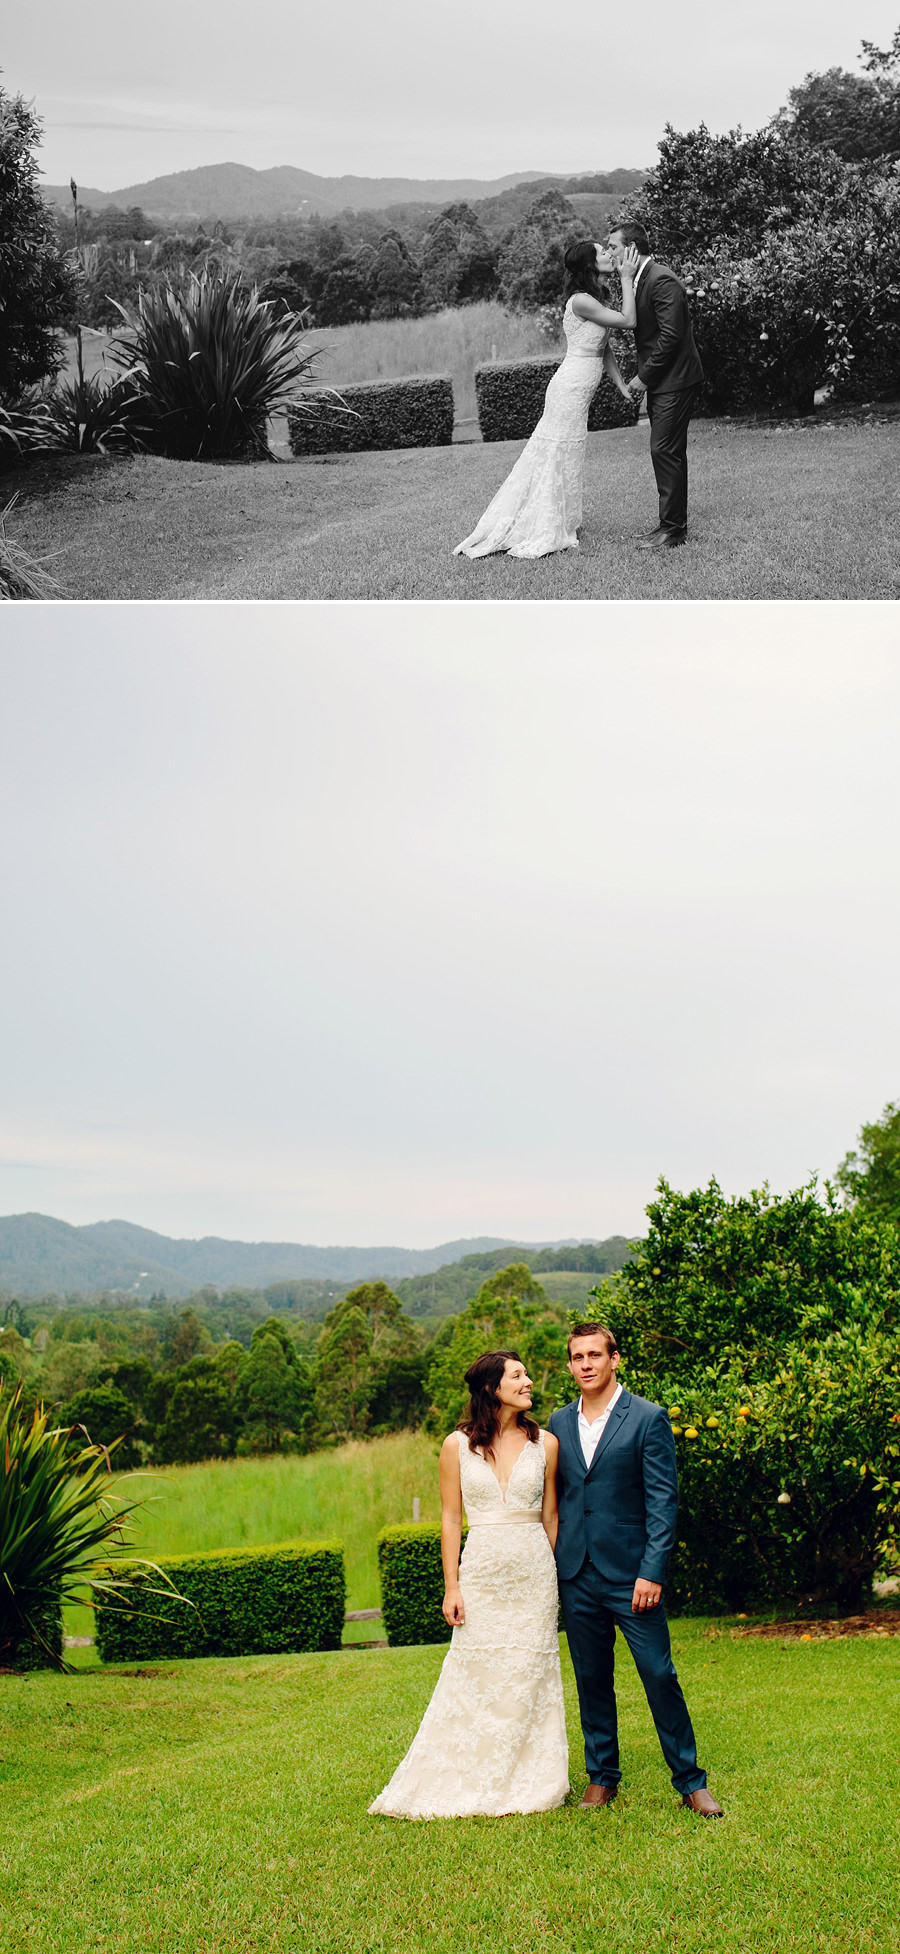 NSW Wedding Photography: Bride & Groom portraits